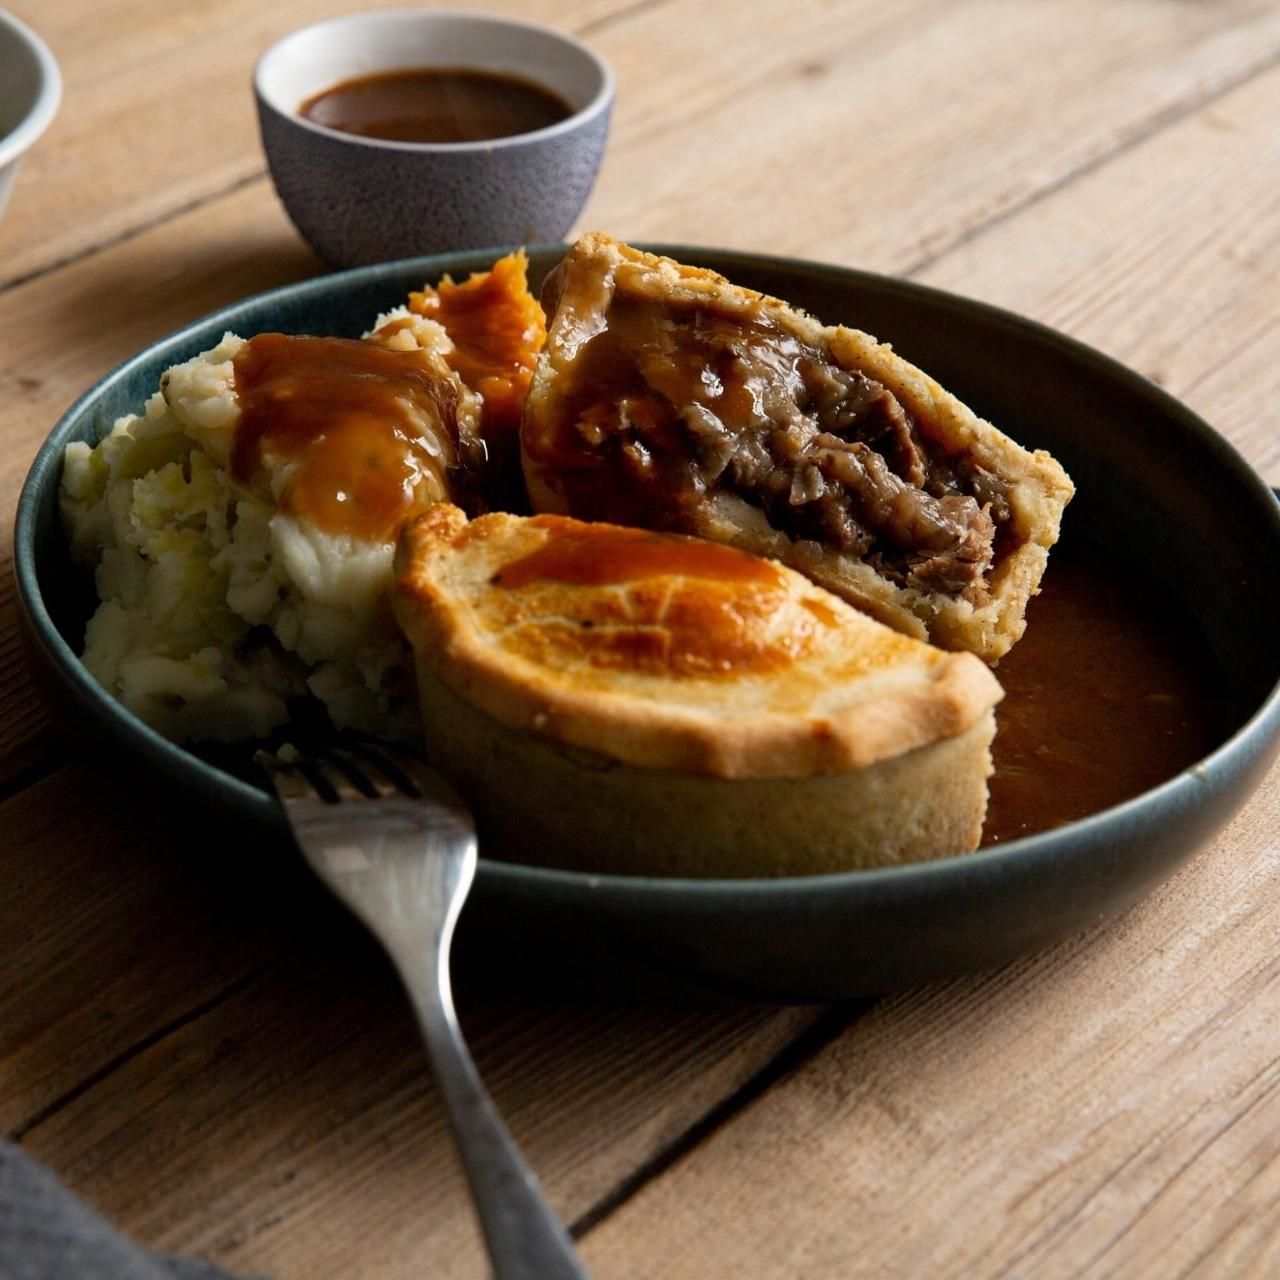 Beef and ale pie cut in half